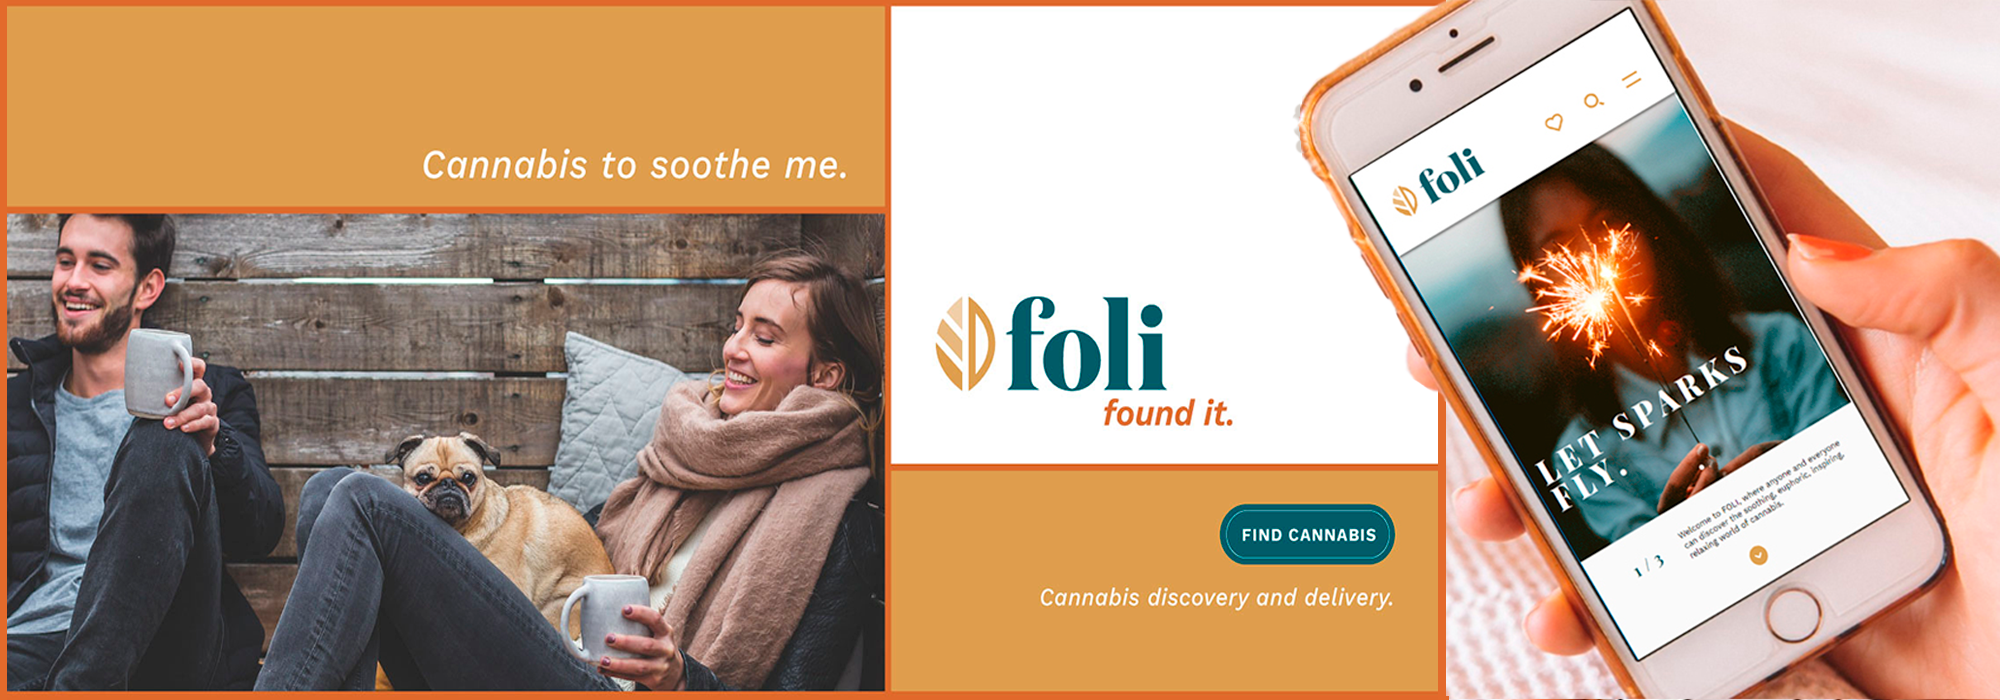 My Foli brand launch marketing campaign